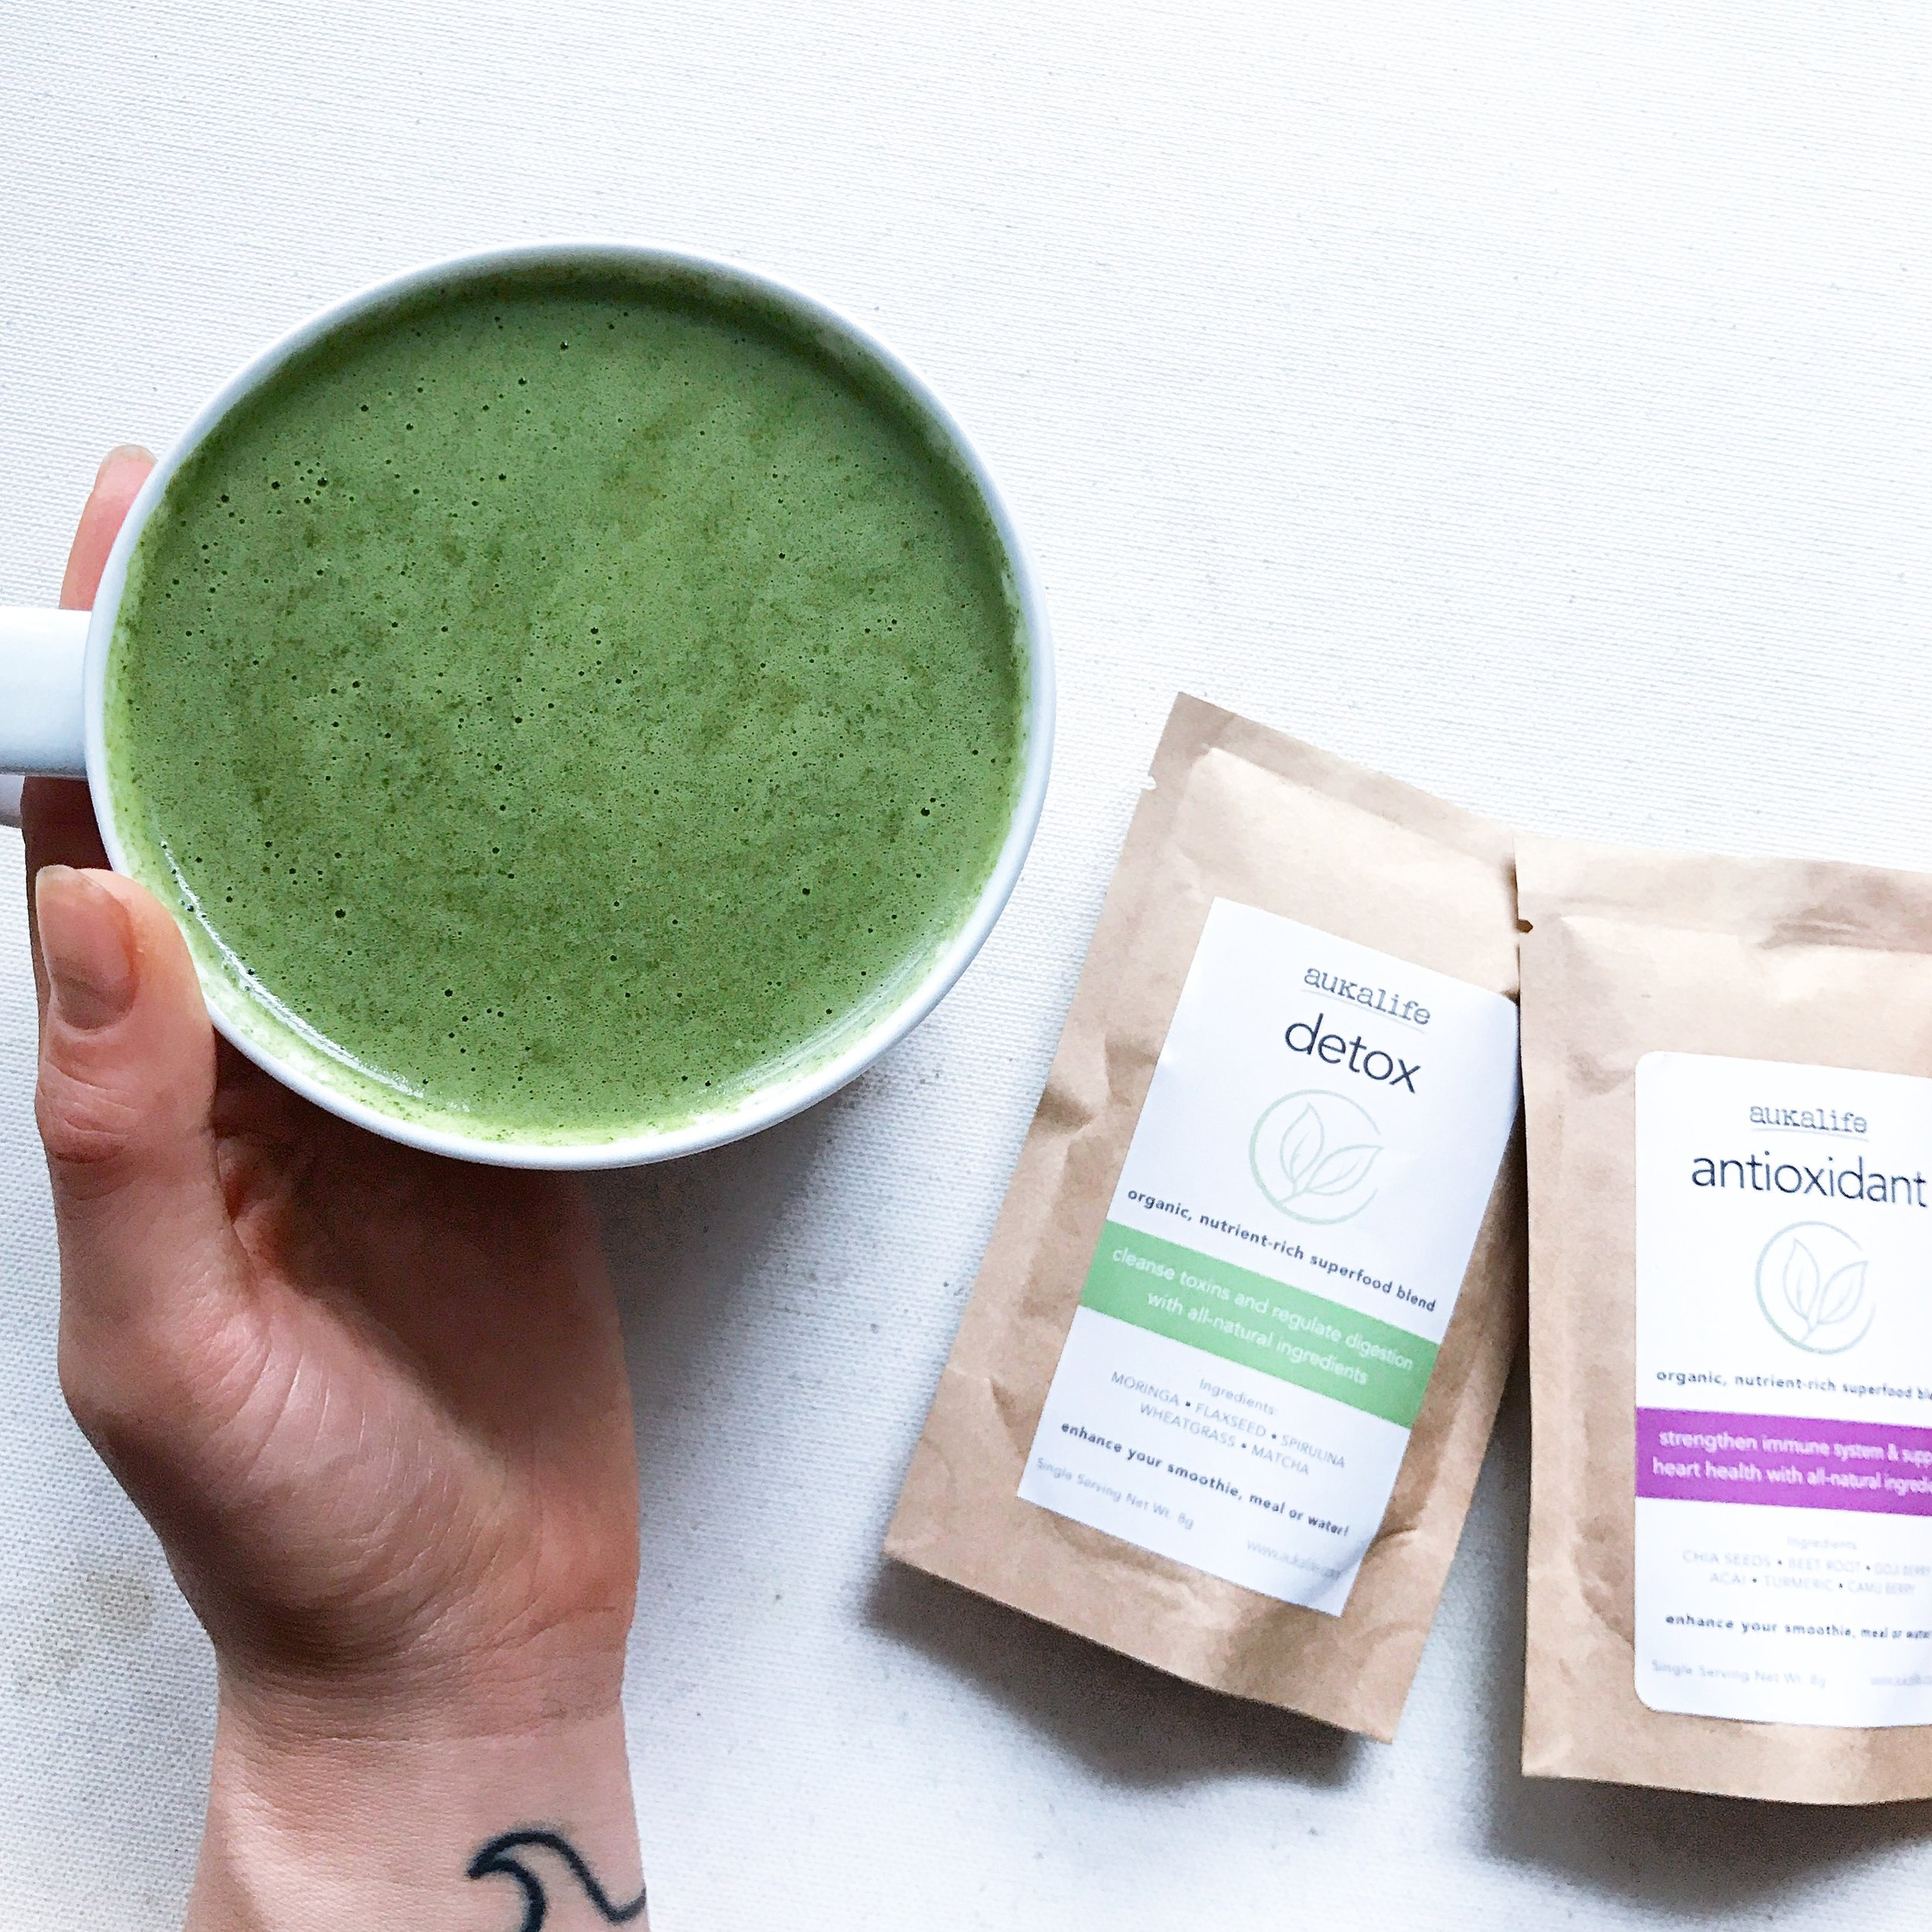 A  uKa Life   I love supporting local, female-owned businesses like Auka Life .  They have superfood blends that you can add to smoothies or just water.   10% off  your order:  APALEO10